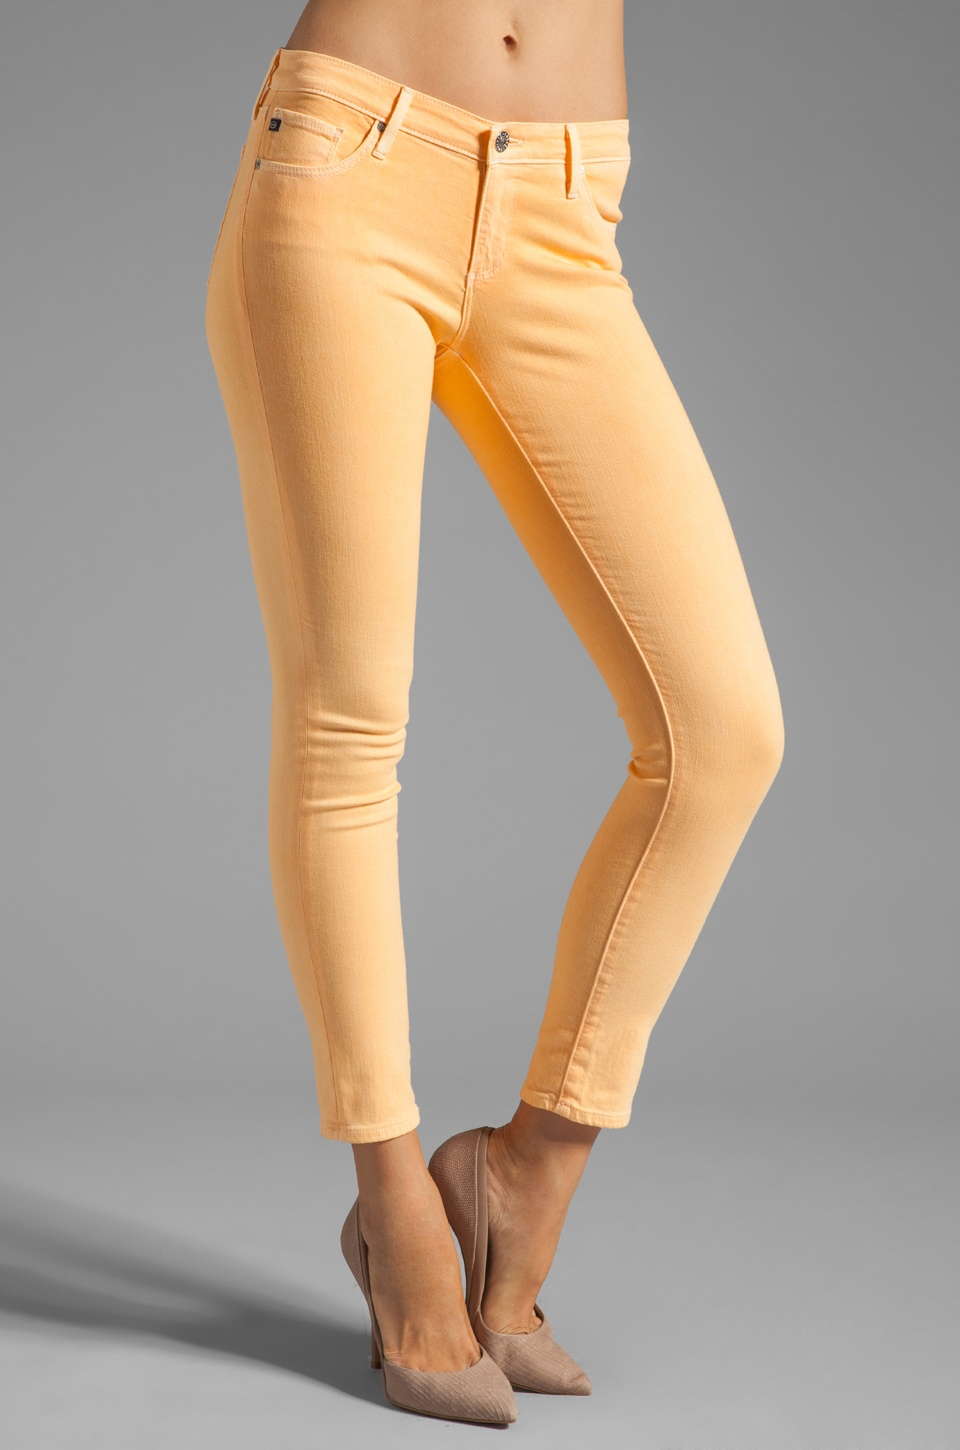 AG Adriano Goldschmied The Ankle Legging in Pigment Peach